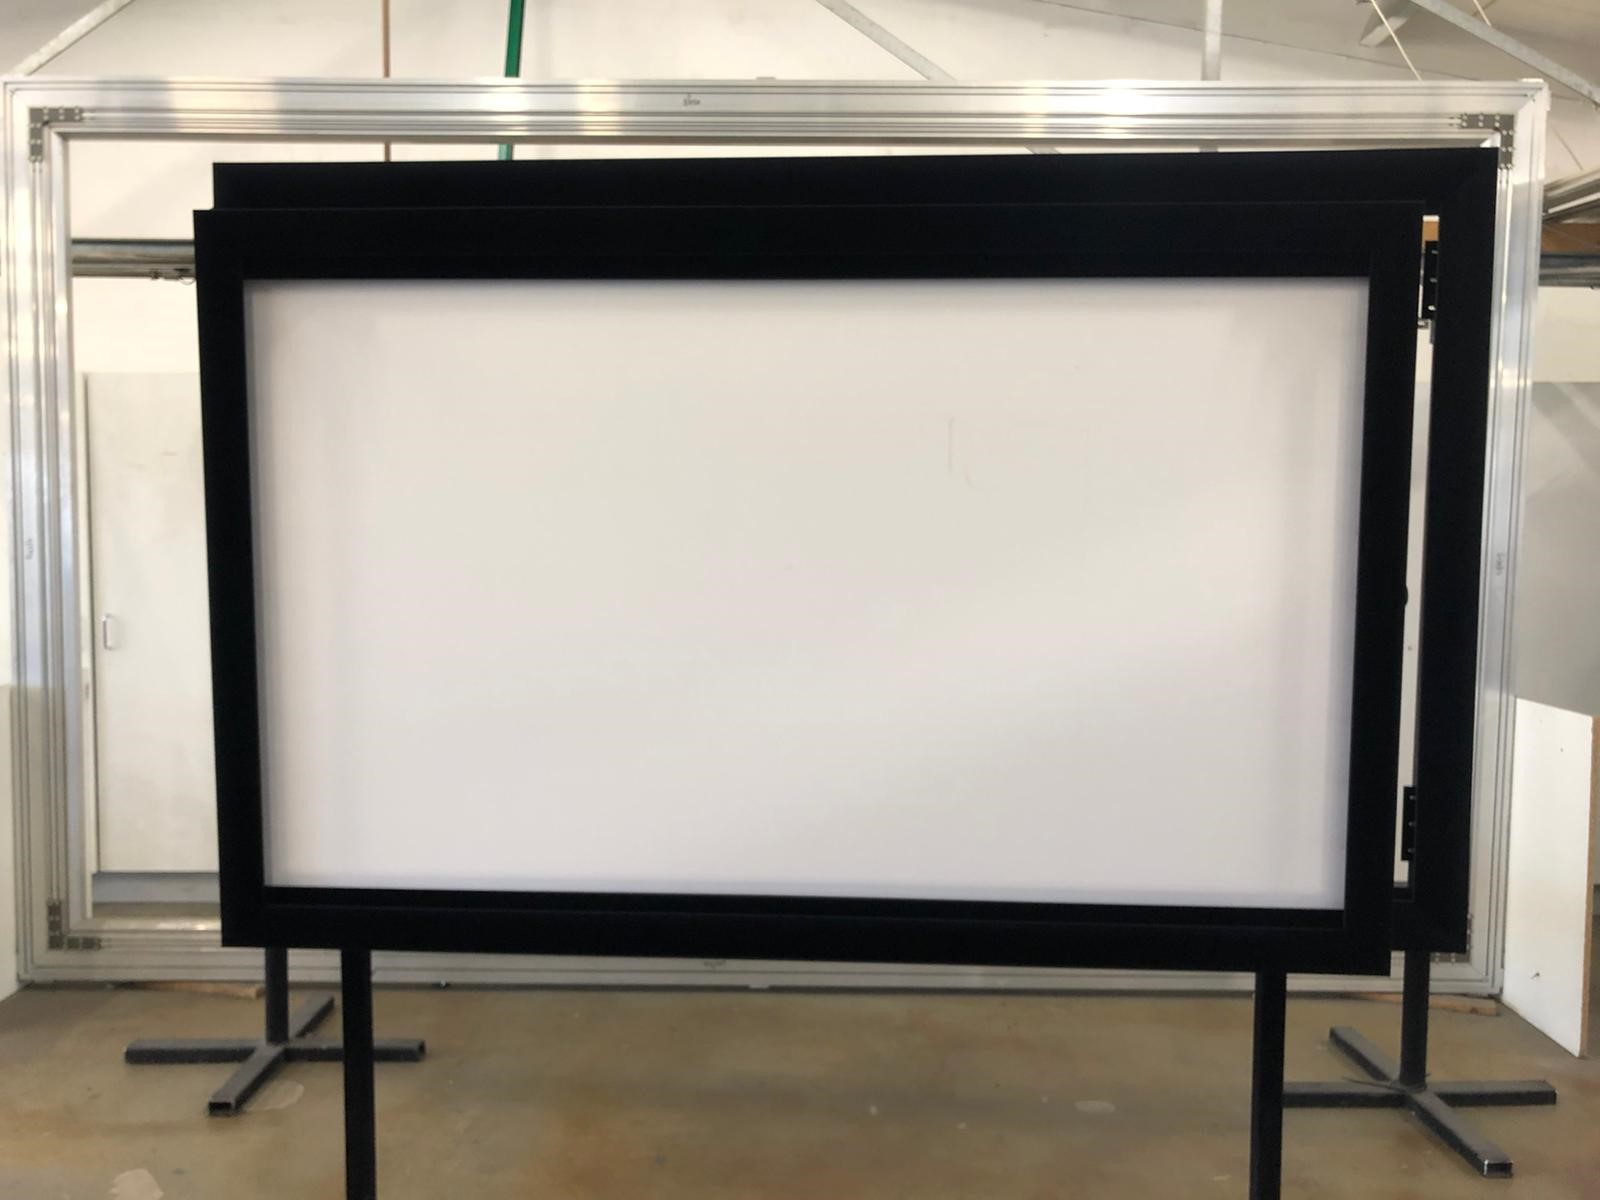 Hollywood-Screens cadre2 reference